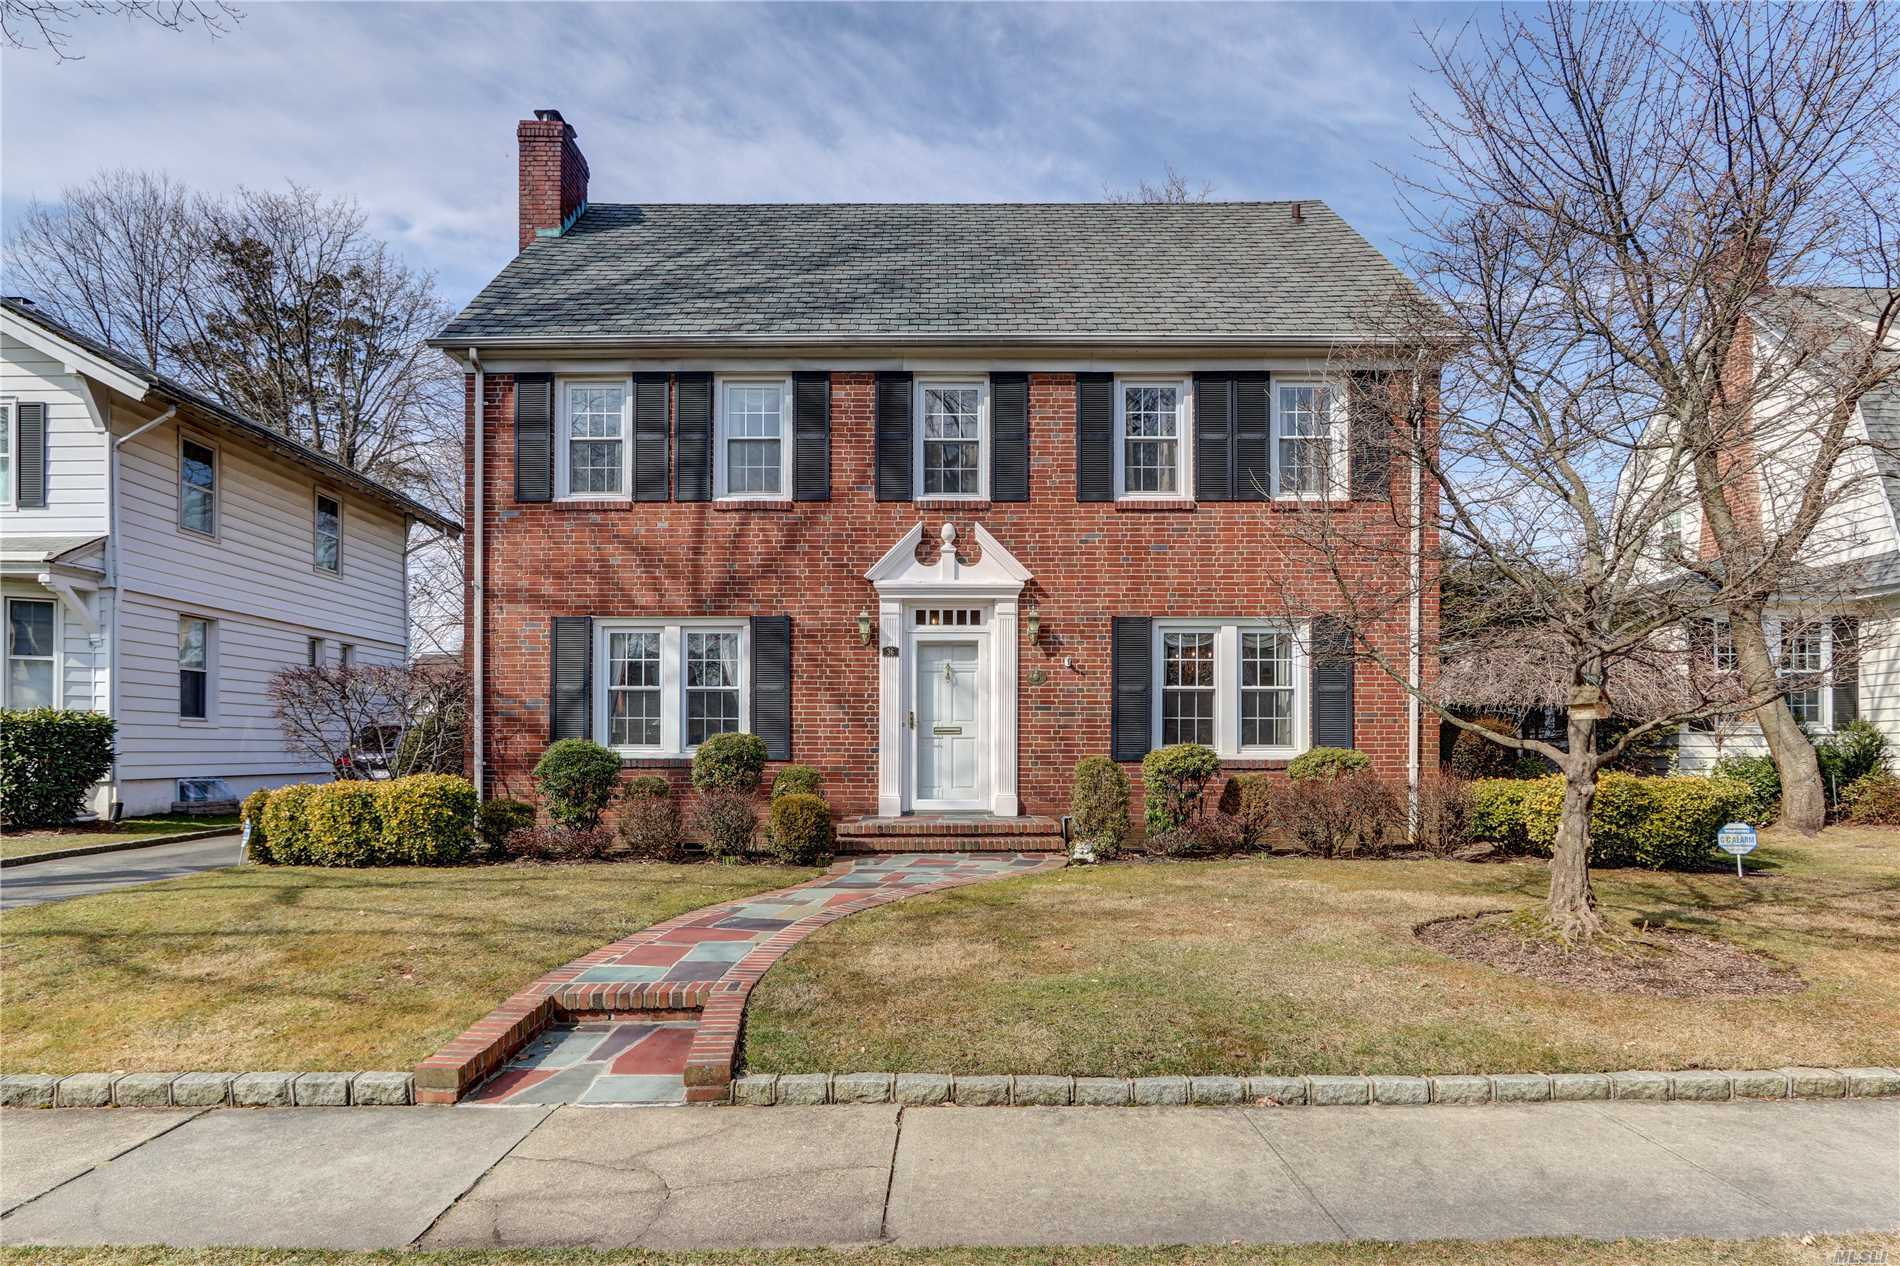 Perfectly situated mid block brick center hall colonial with oversized bedrooms, including master with suite. Set on 60x100 lot near Nassau Boulevard train this home has beautiful first floor layout with updated kitchen and adjacent family room. Charming back staircase leads to oversized 4th bedroom perfect for guest or au pair.